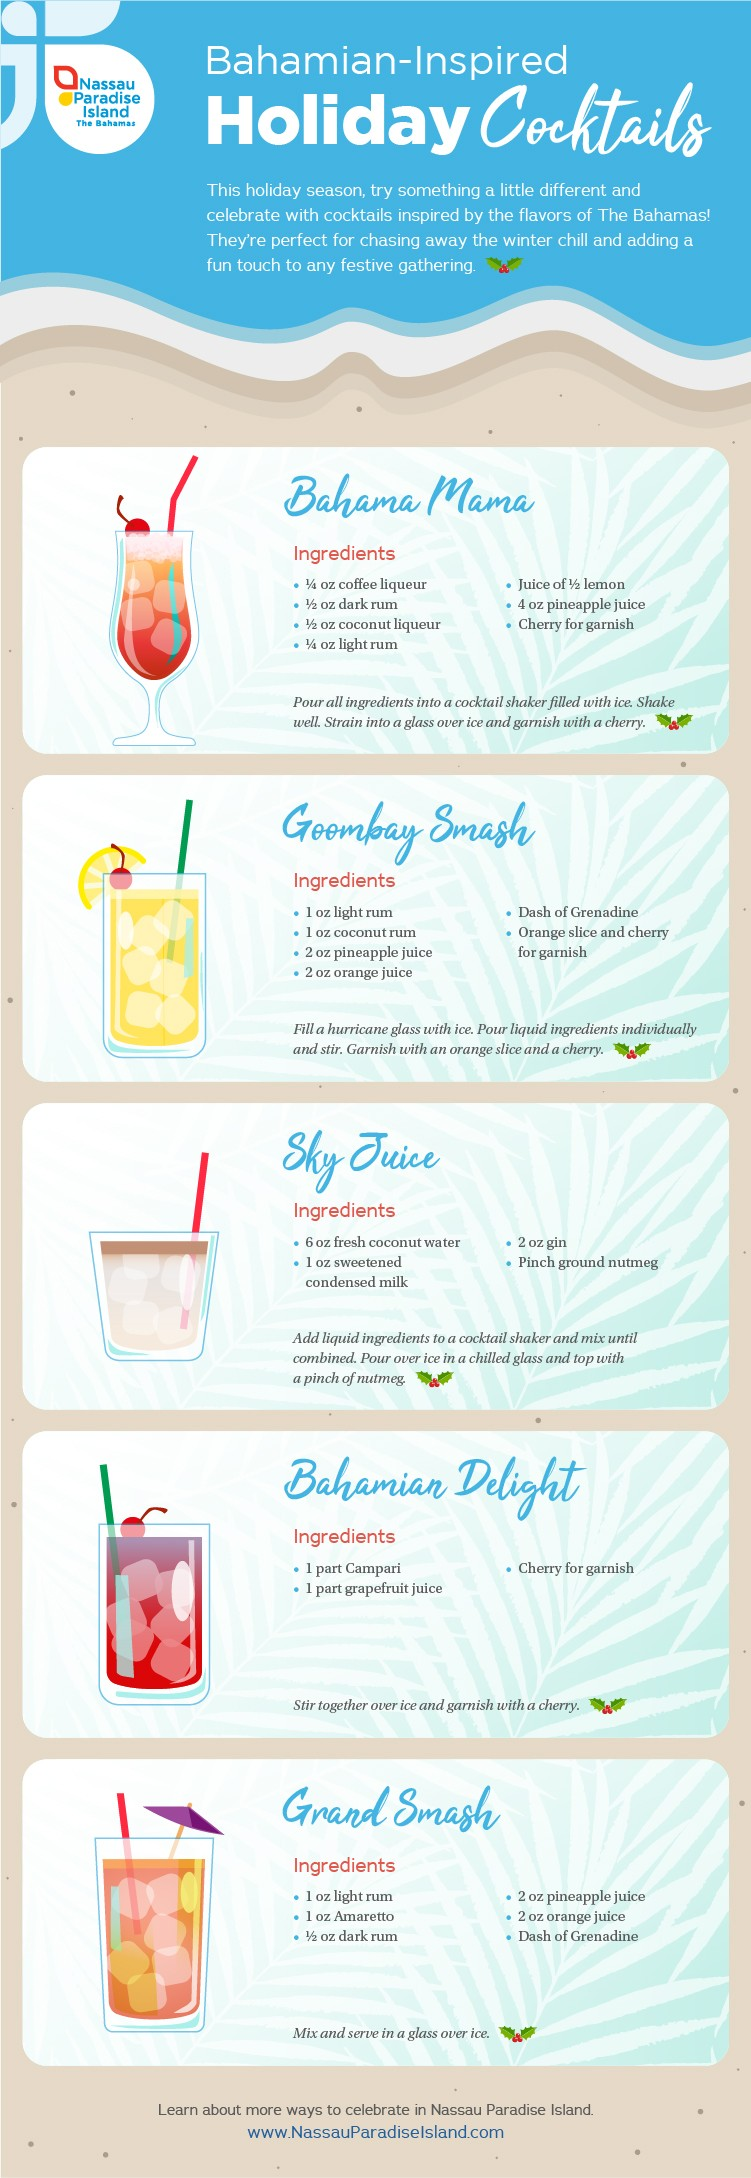 Infographic featuring Bahamian-style holiday cocktail recipes